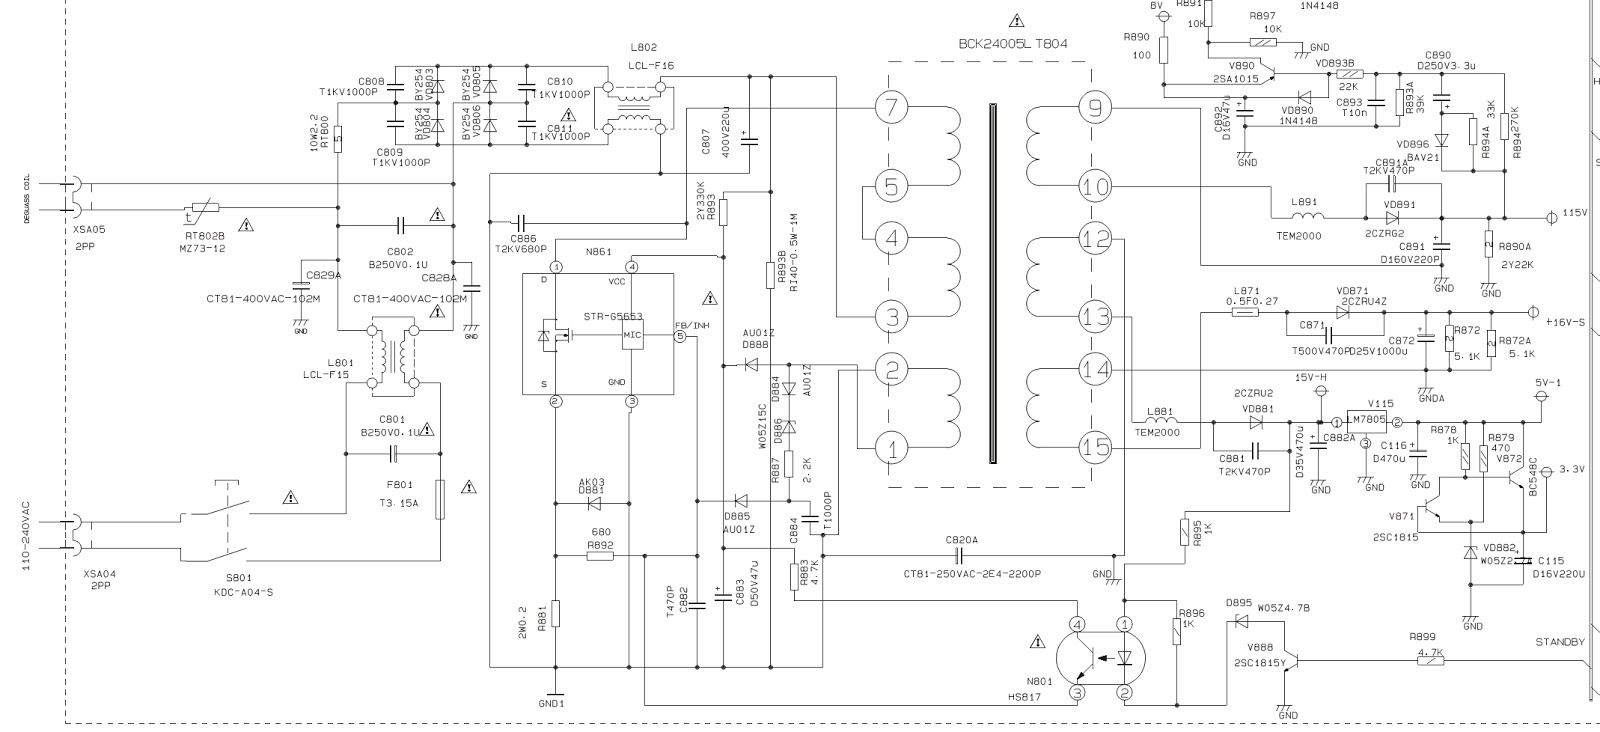 Sony Lcd Tv Power Supply Circuit Diagram Data Abb Earthleakage Breaker F364 Nib Schematic Enthusiast Wiring Diagrams U2022 Rh Rasalibre Co Schematics Toshiba